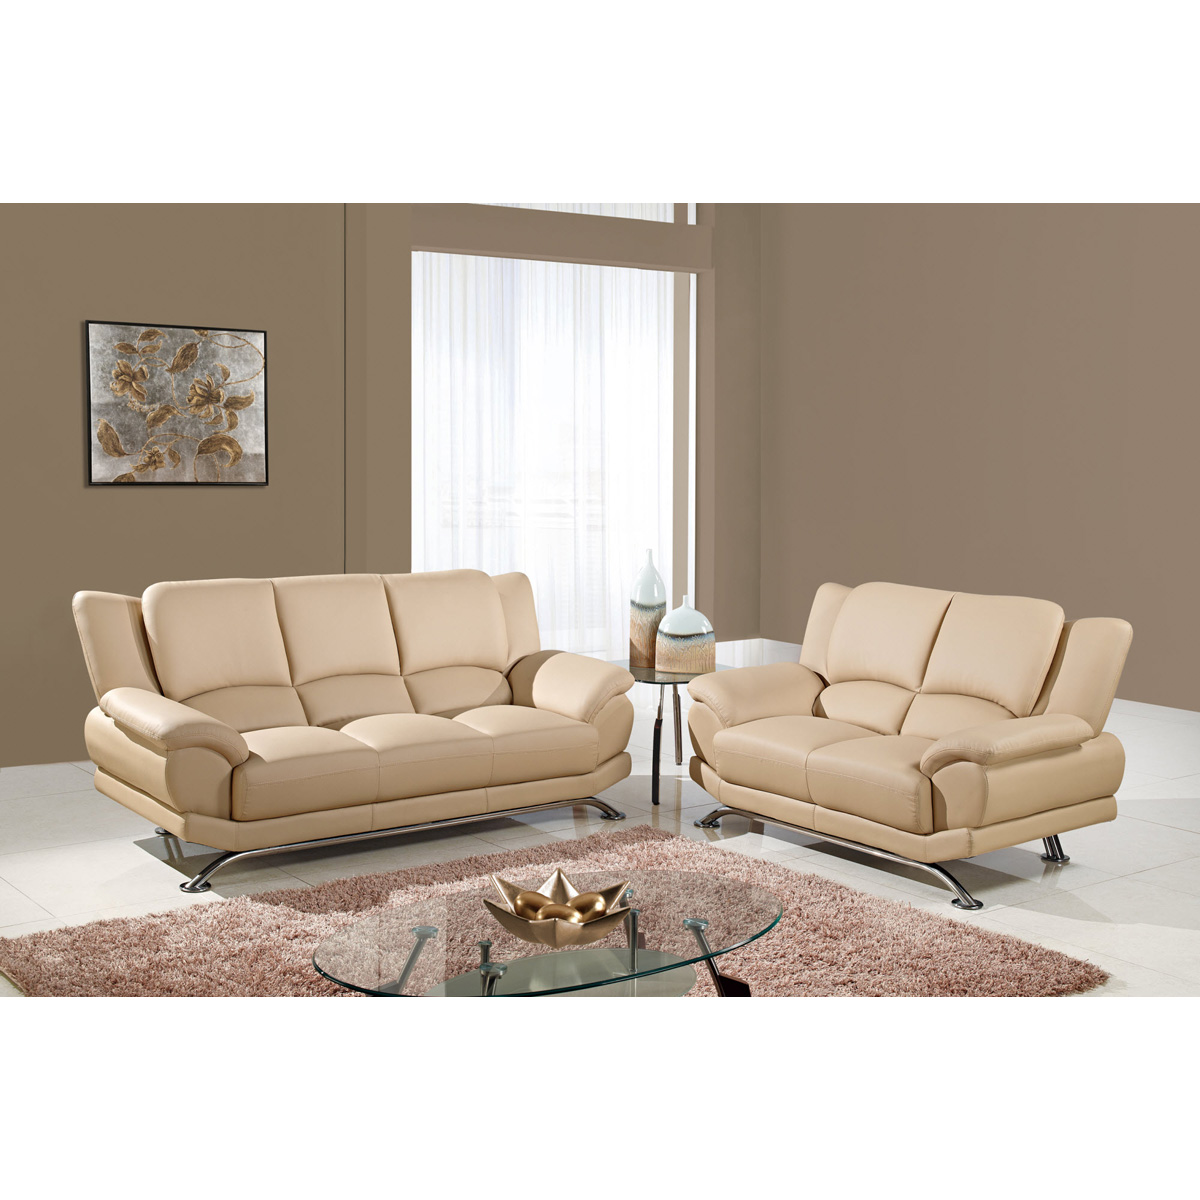 Jesus Leather Sofa Set - Cappuccino